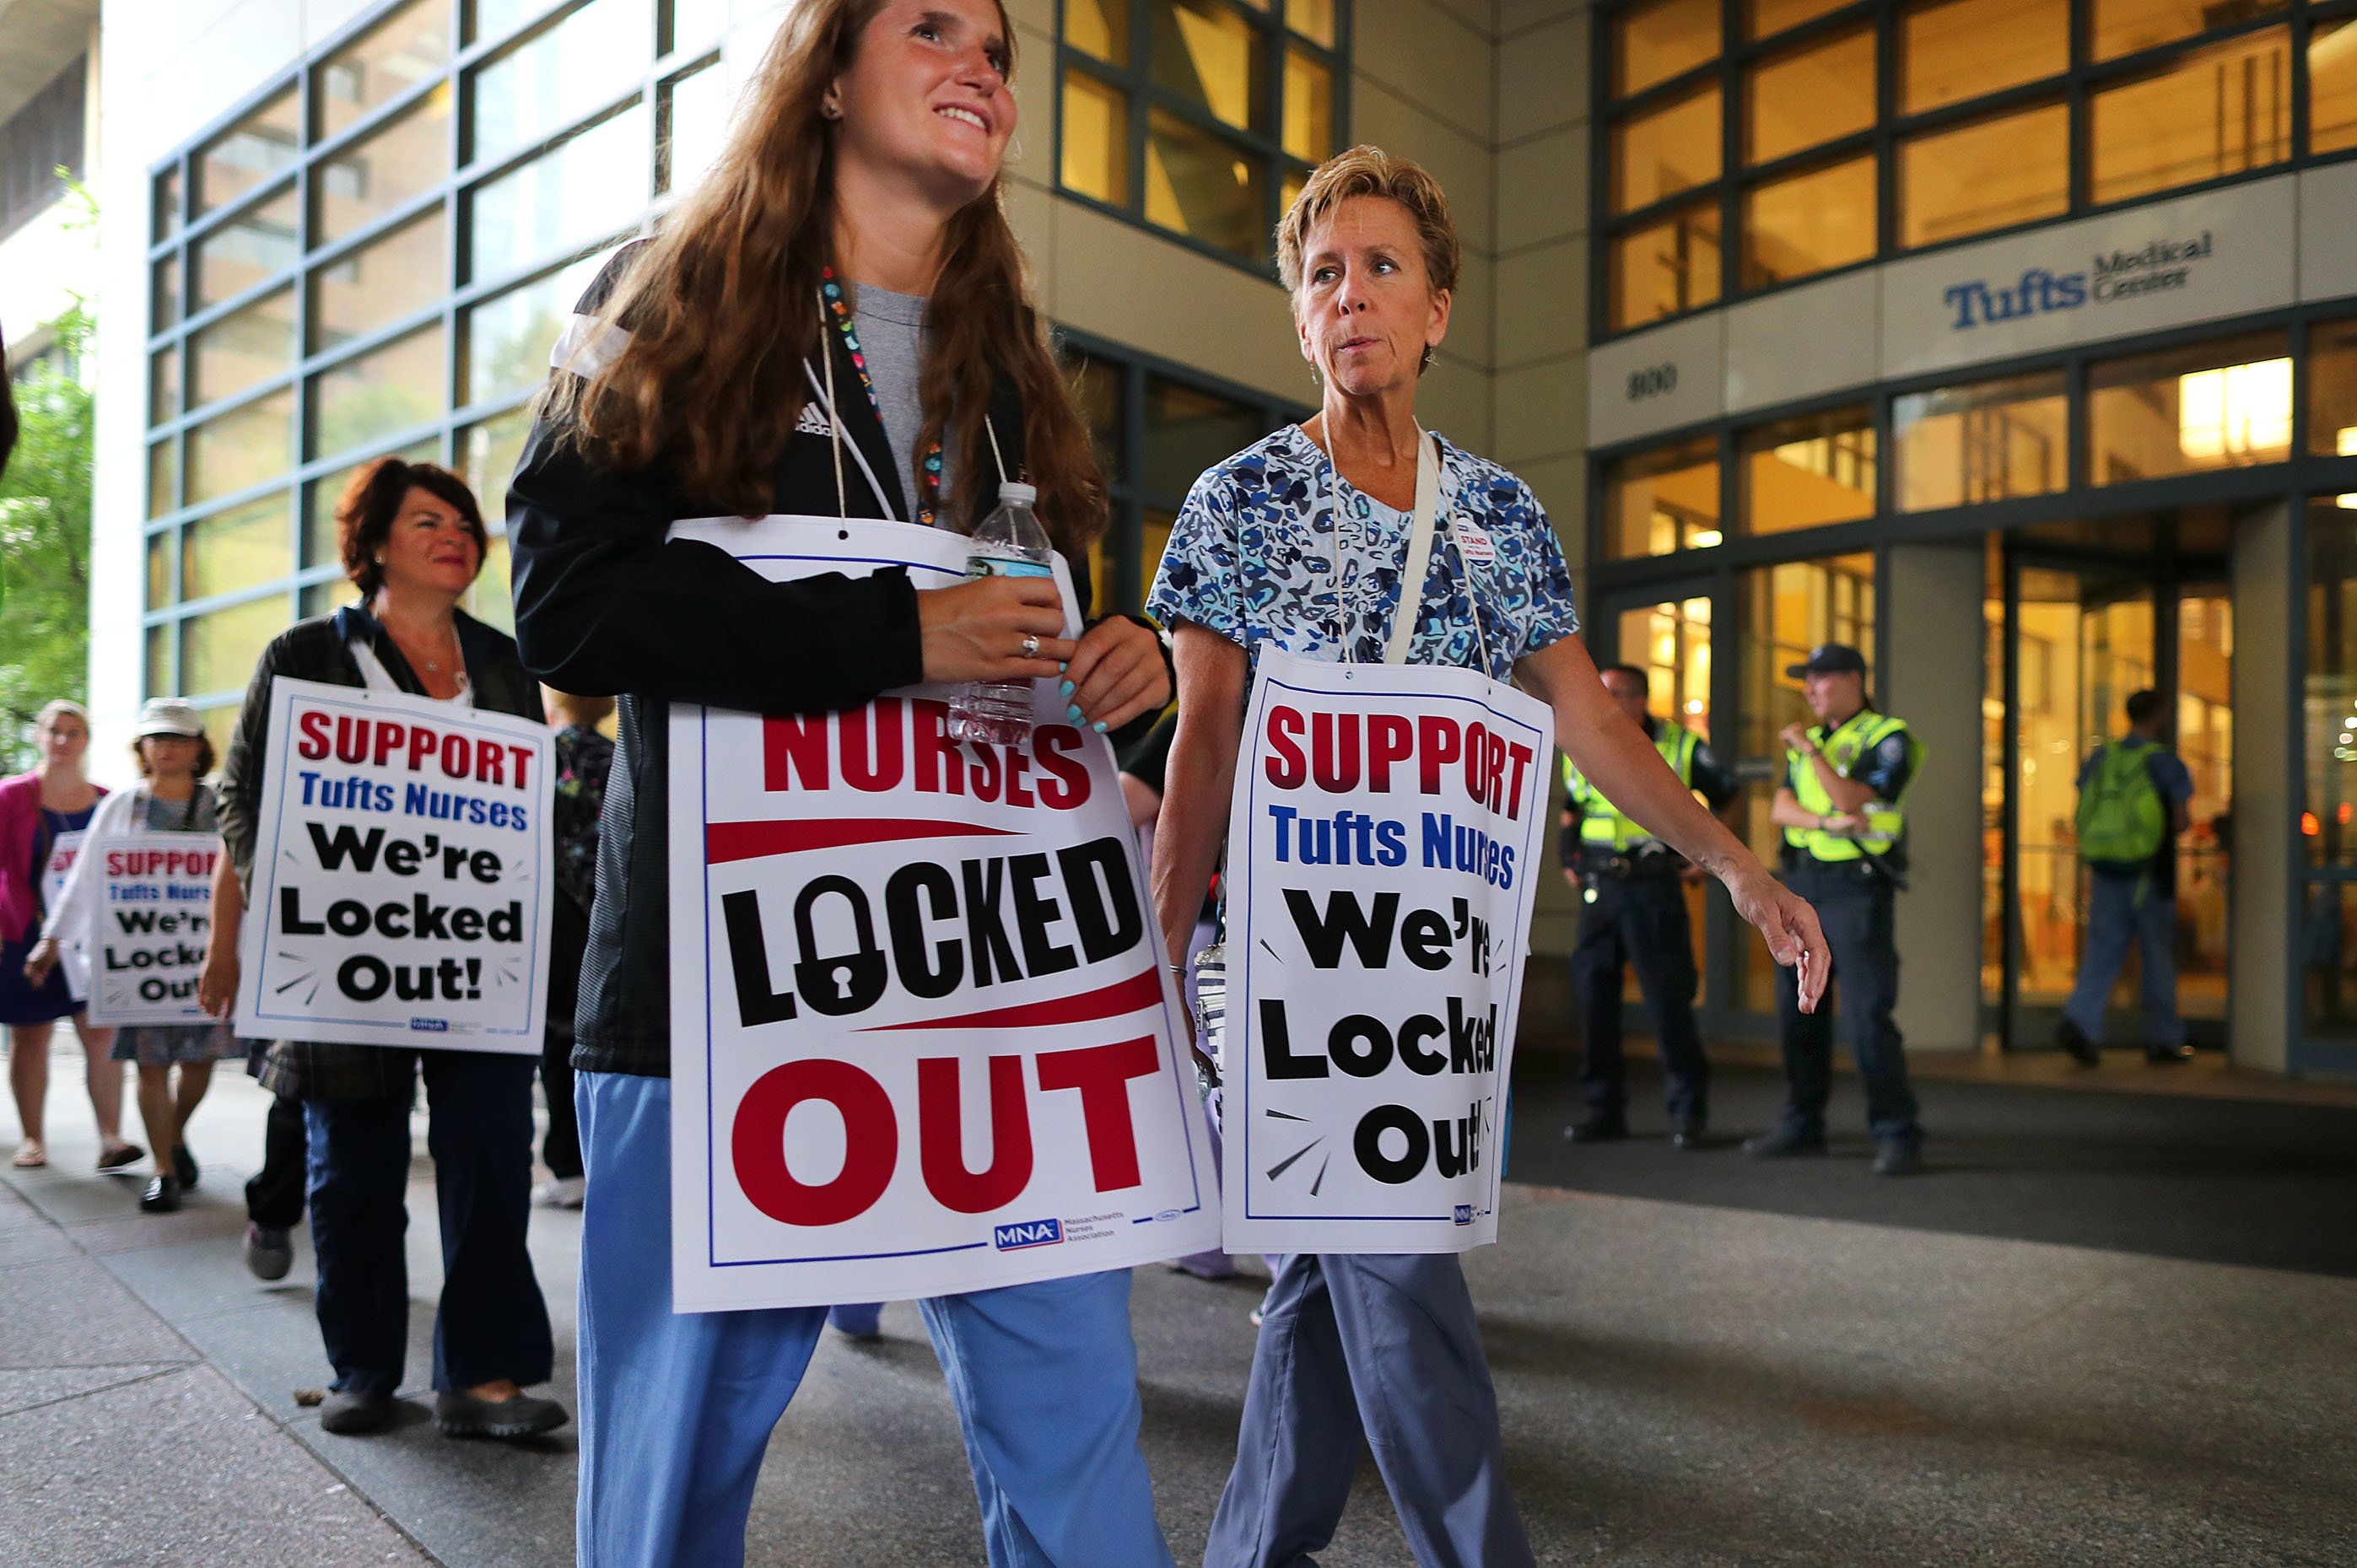 Tufts Medical Center nurses picket in Boston on July 13 after being locked out after a 24-hour strike. One of the sources of stress nurses report is not being included in the decision-making process at health facilities.